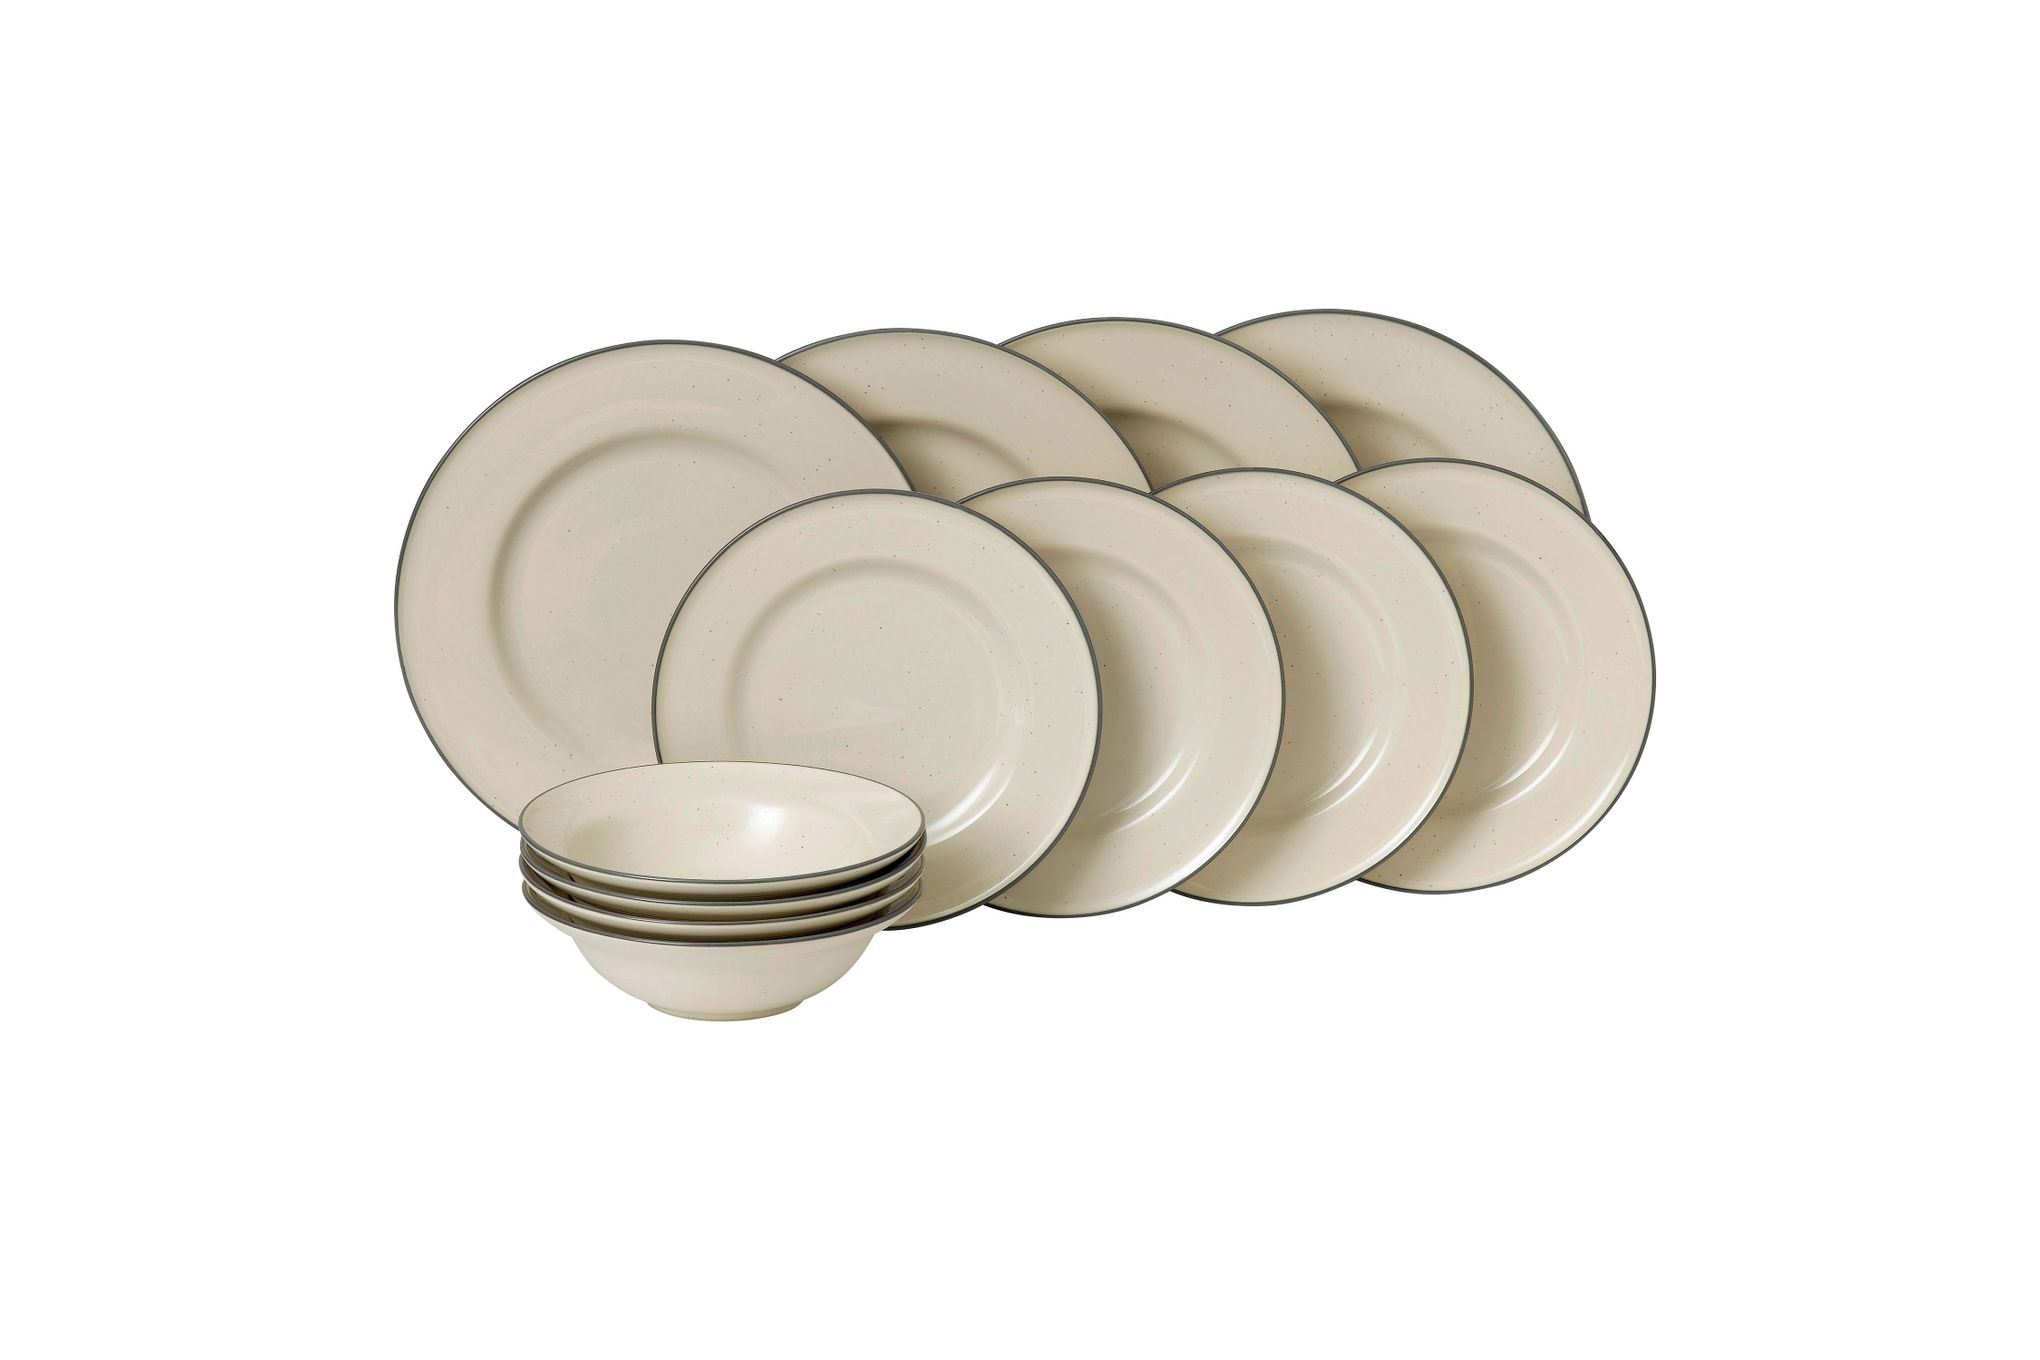 Gordon Ramsay for Royal Doulton Union Street Cream 12 Piece Set 4 x Plate 27cm, Plate 22cm, Bowl 18cm thumb 1